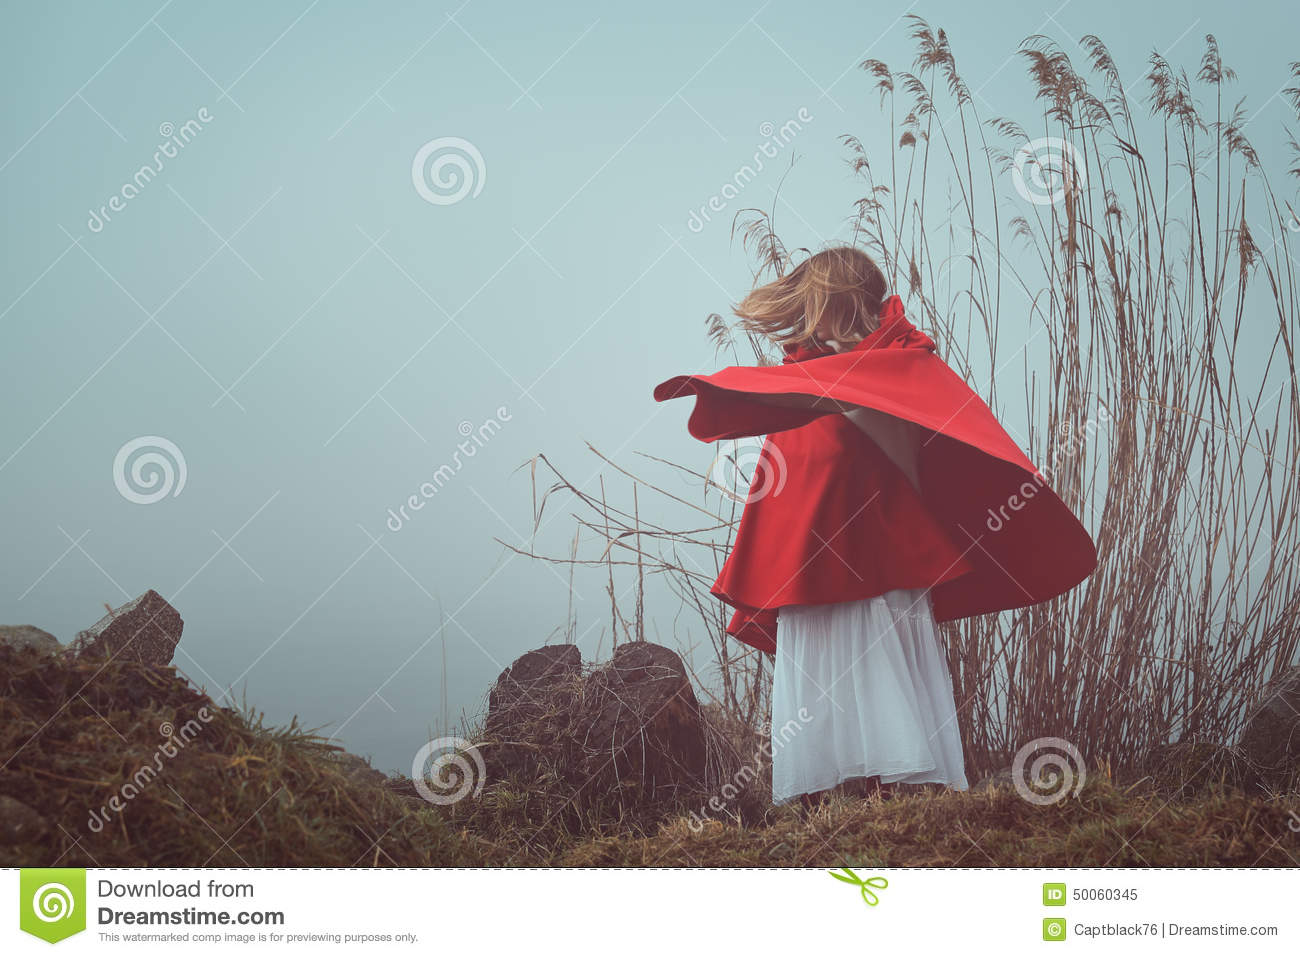 Dark and surreal portrait of a red hooded woman